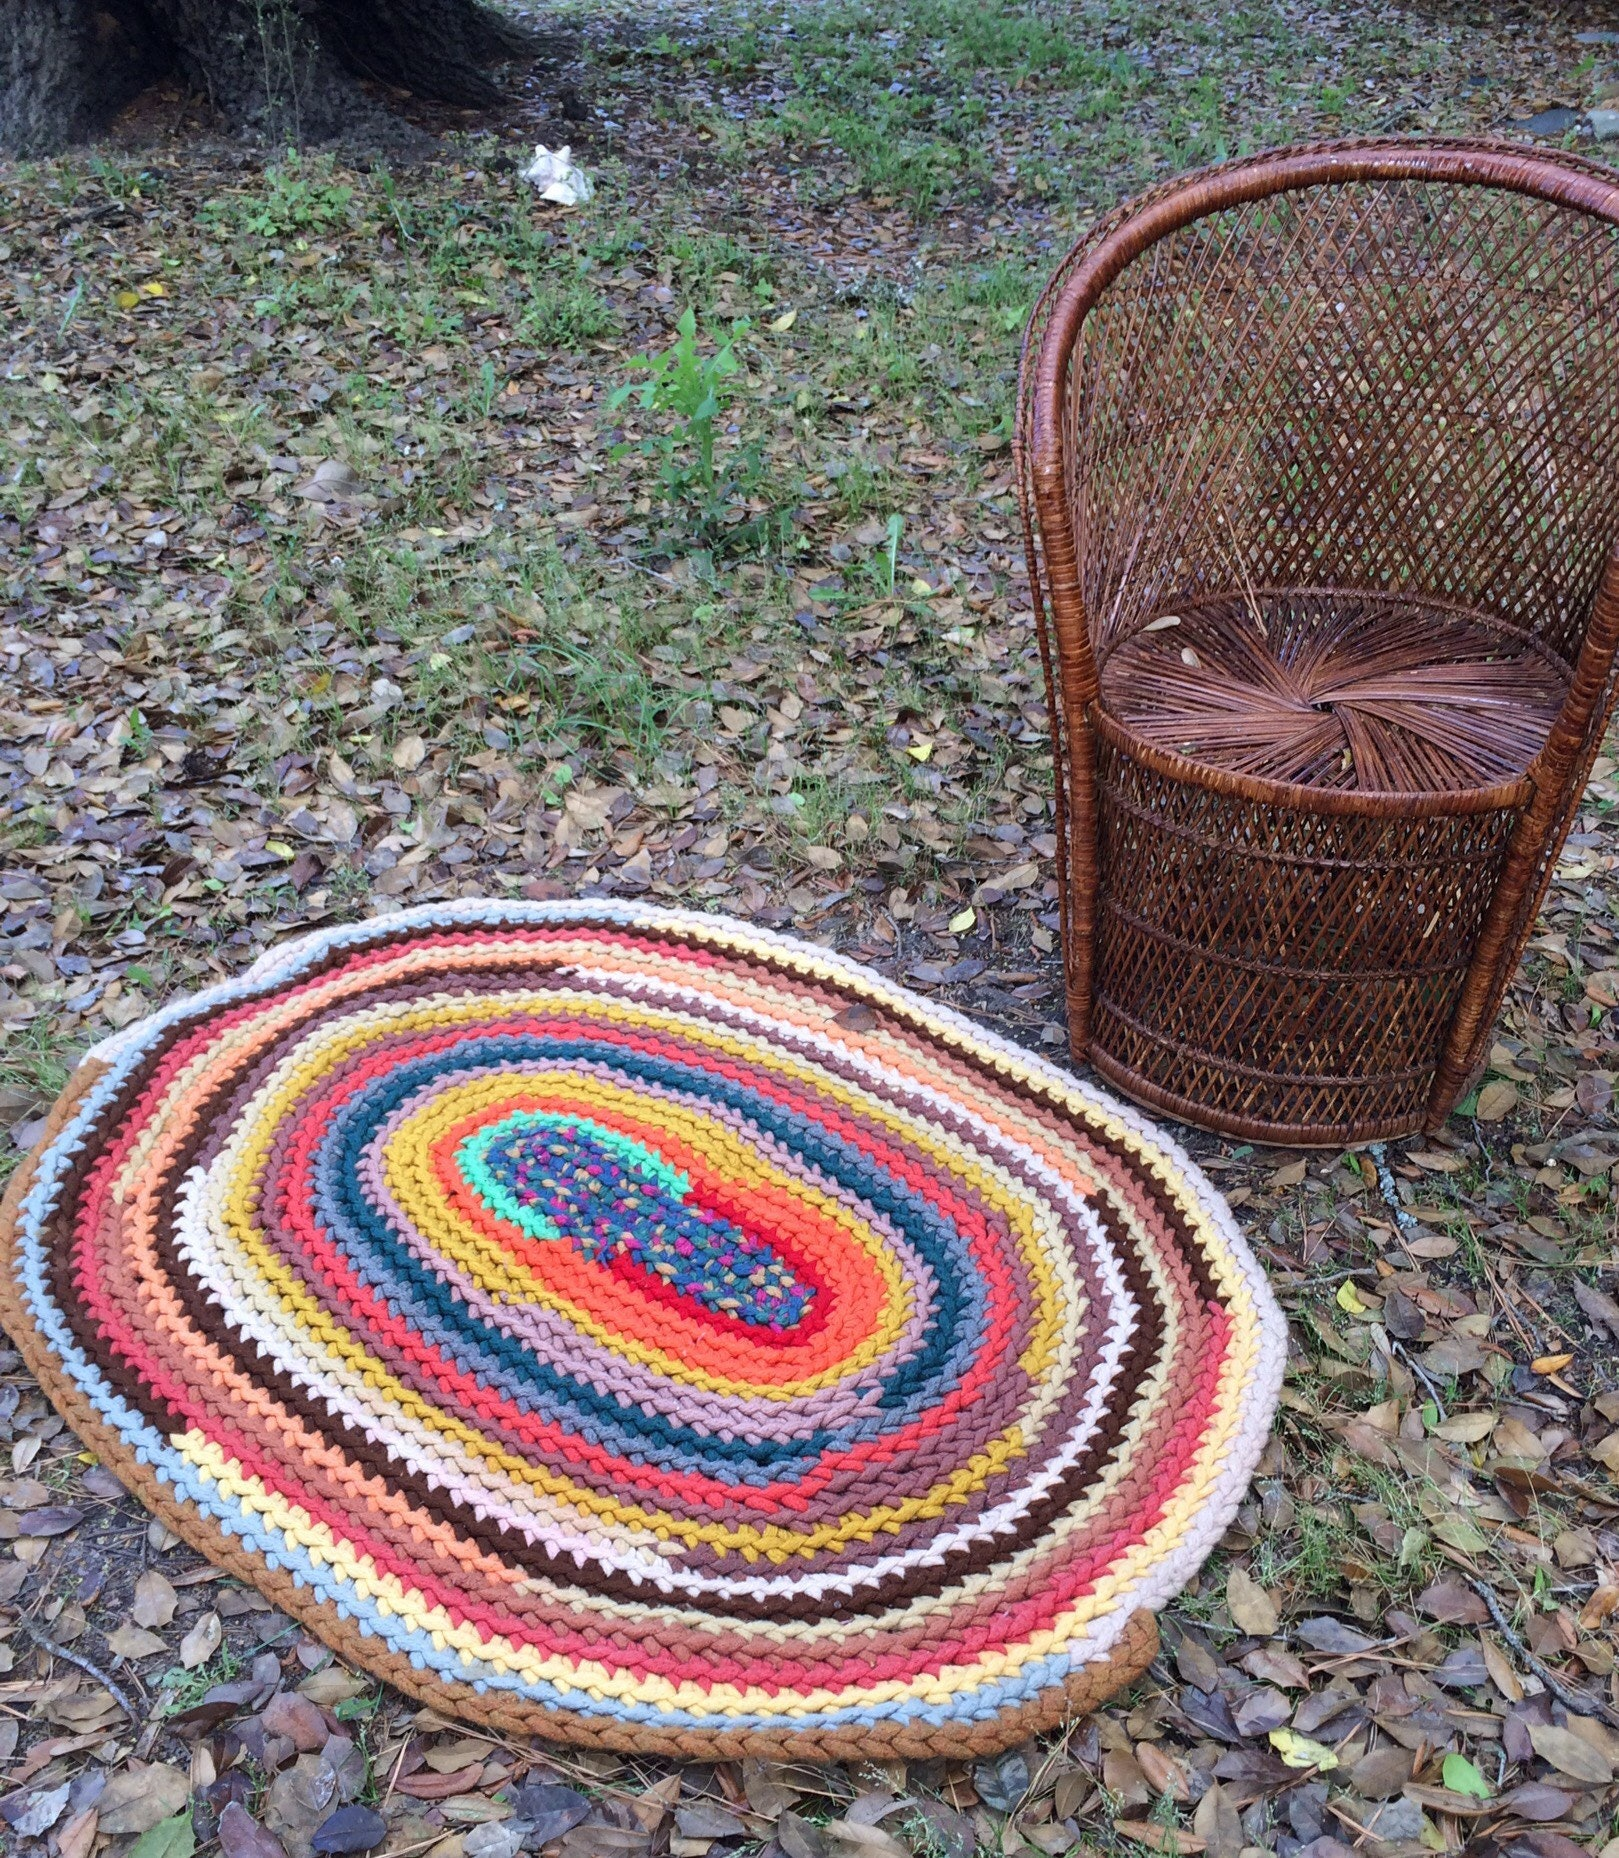 Retro 70's Braided Rag Rug 48